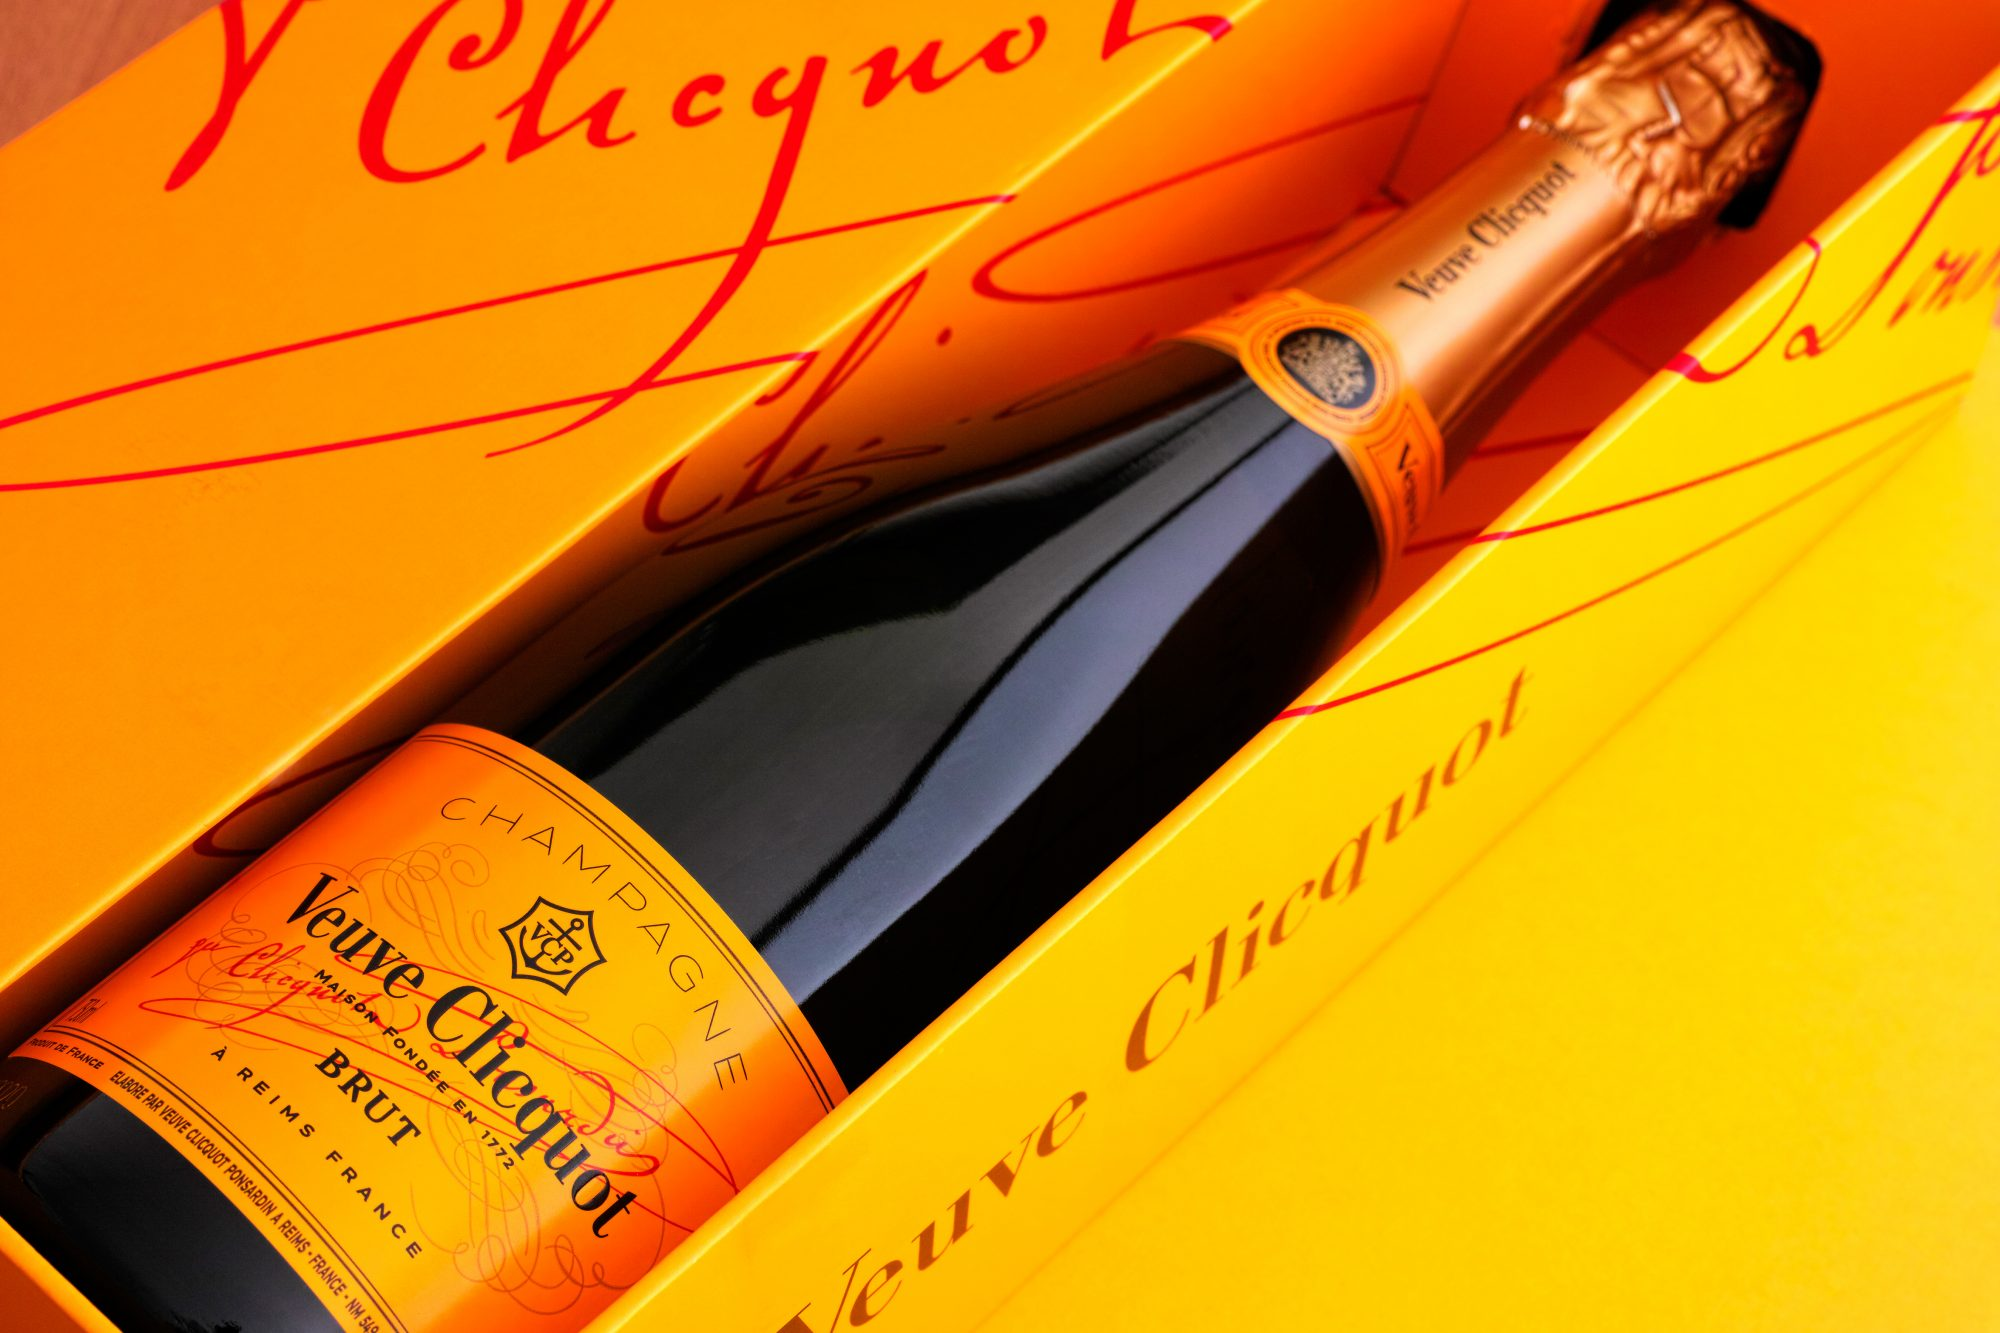 Veuve Clicquot Releases Two New 'Flavors' of Champagne